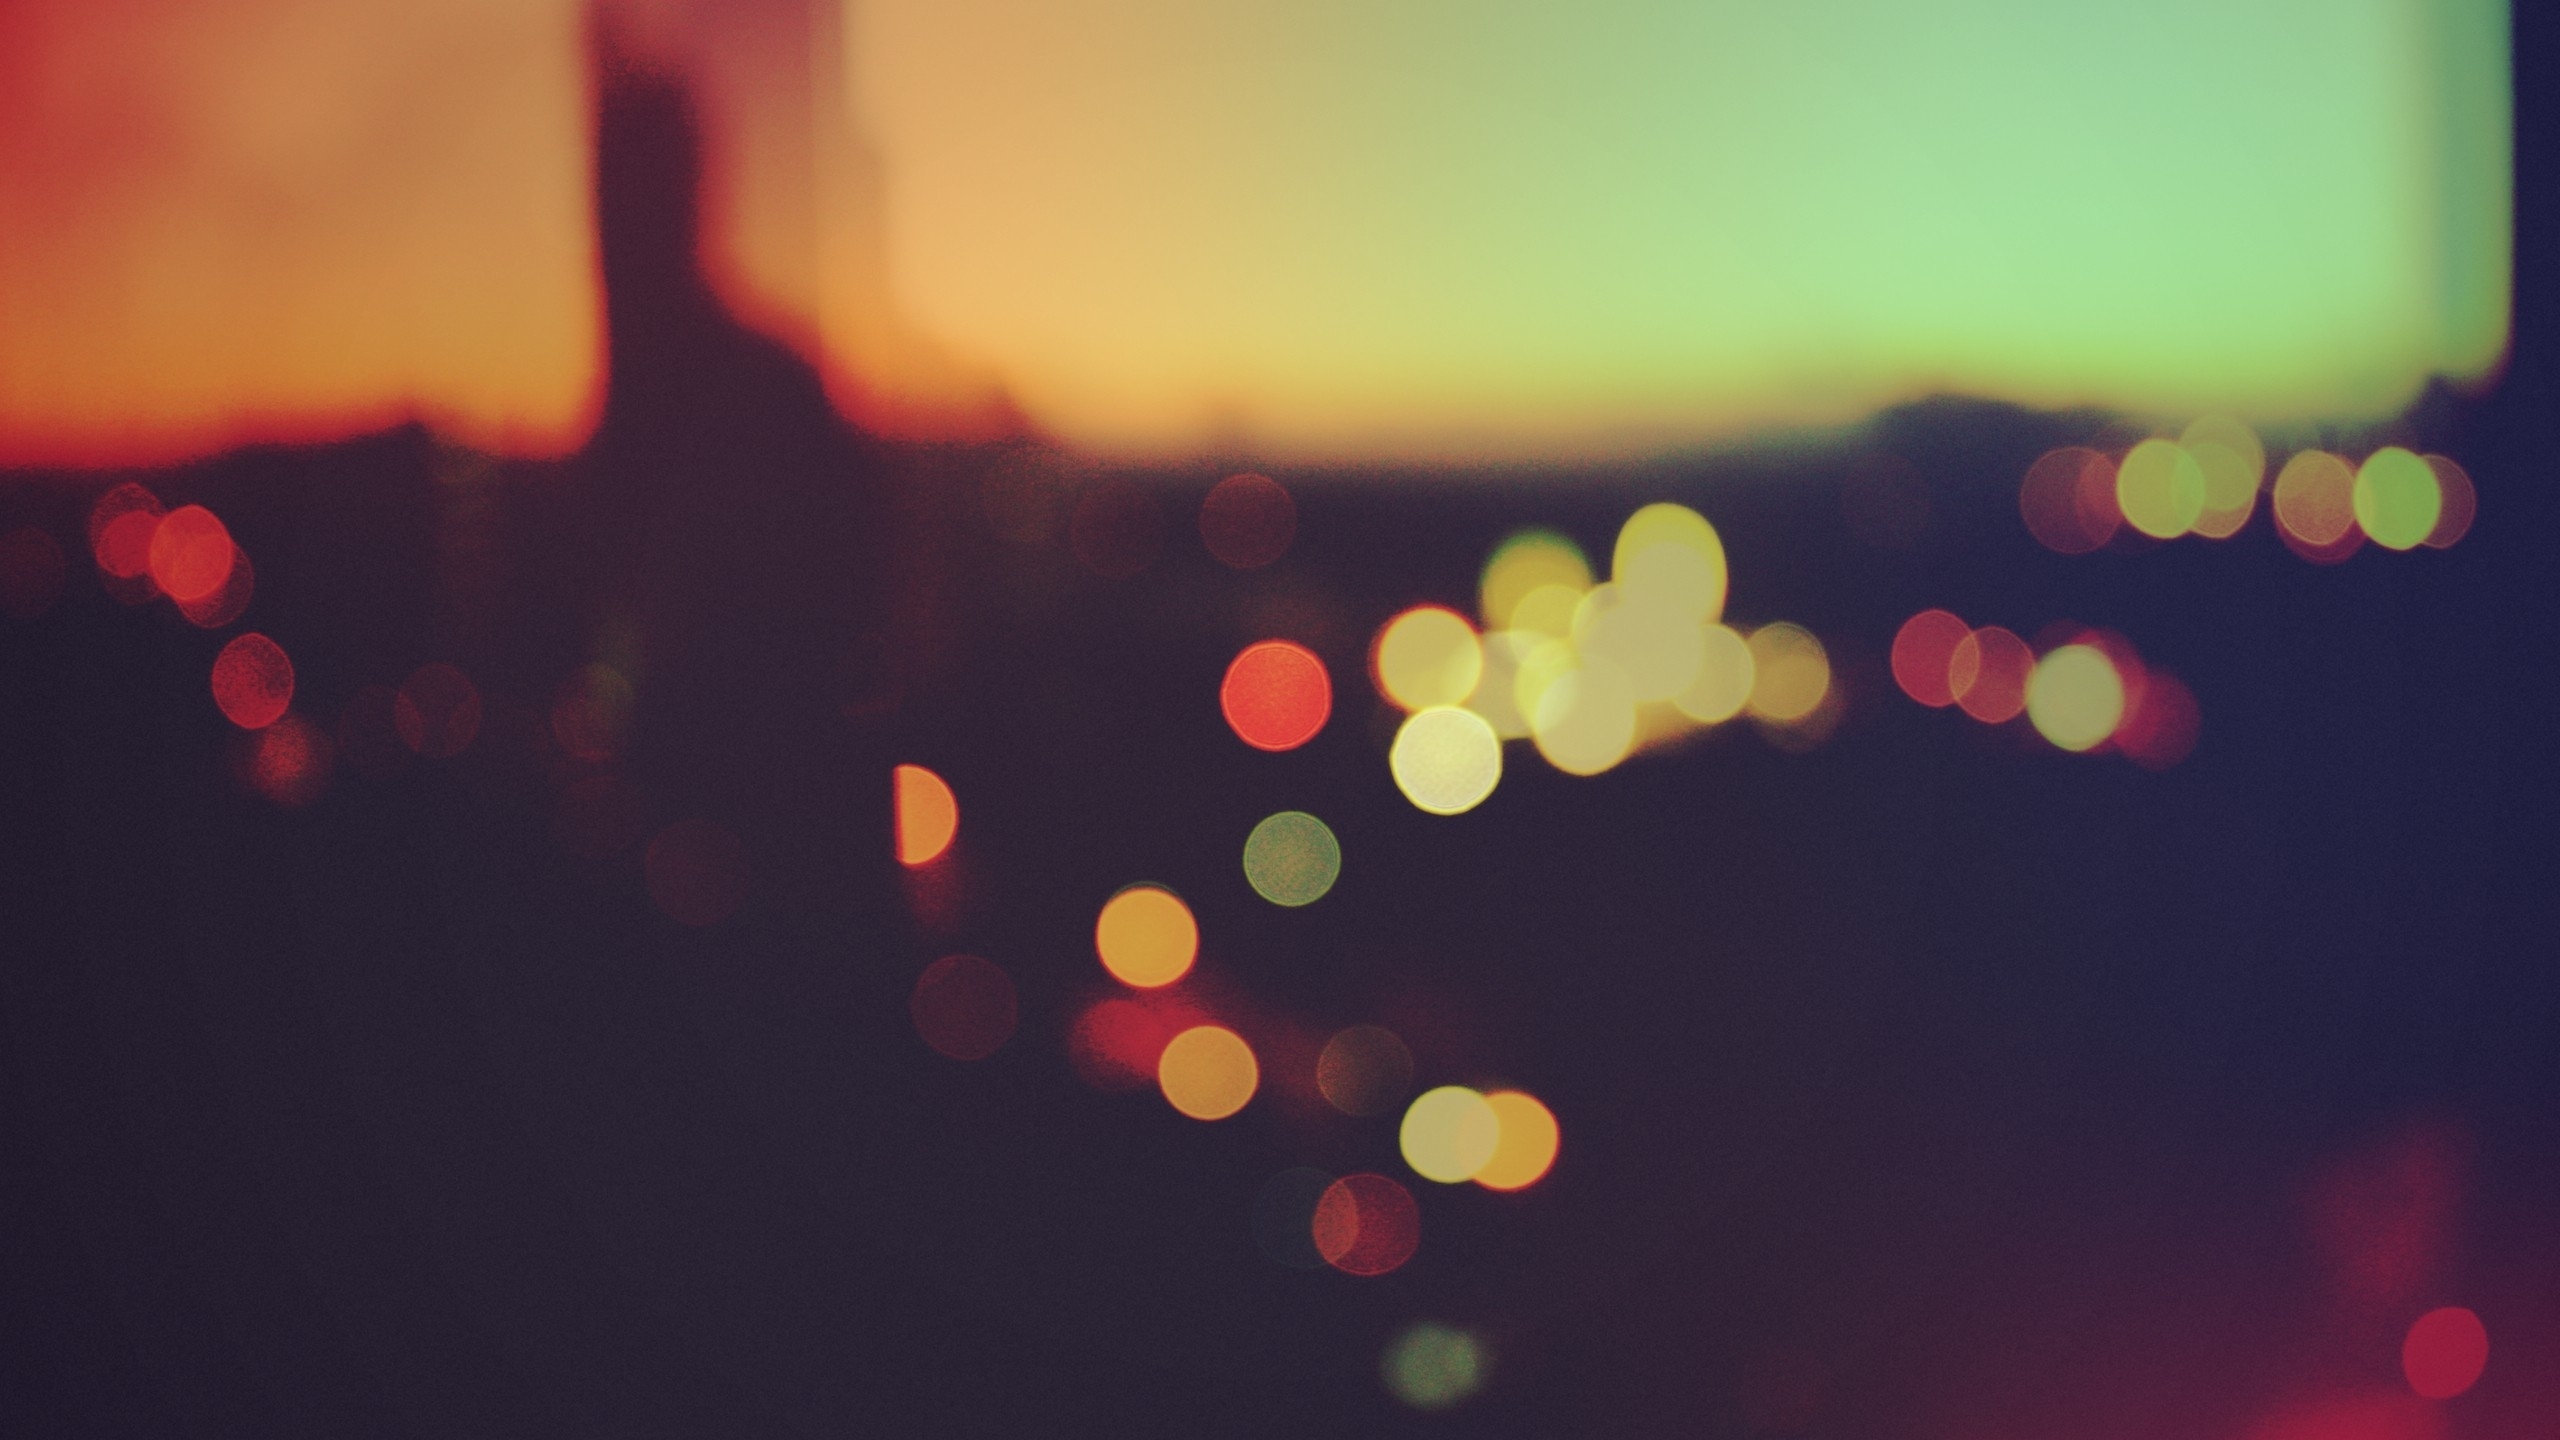 Hd wallpaper hipster - Hipster Wallpapers